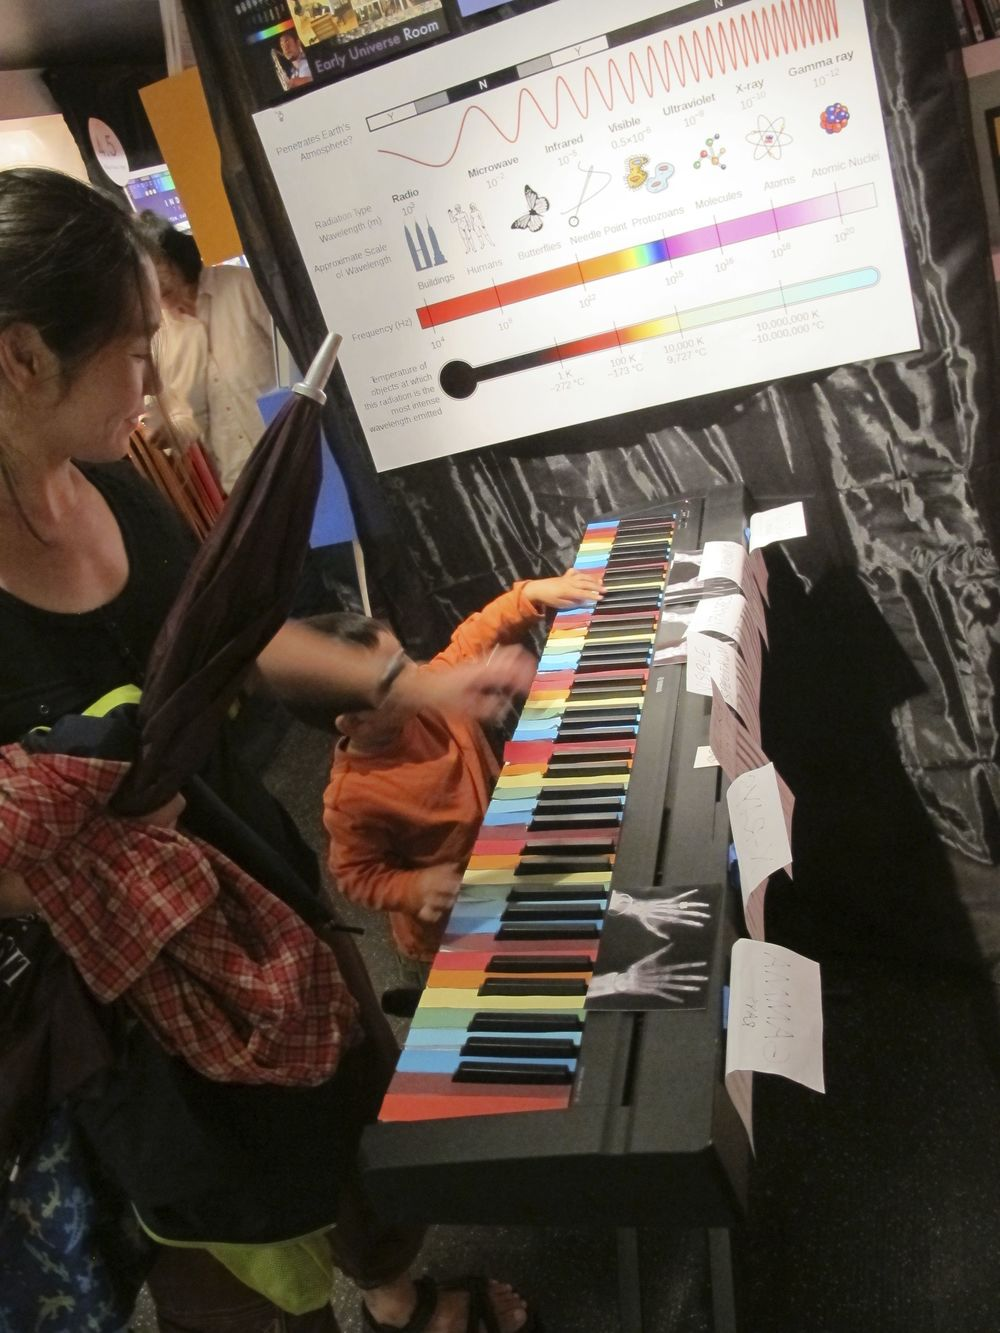 Pianists young and old tested out our electromagnetic spectrum keyboard.